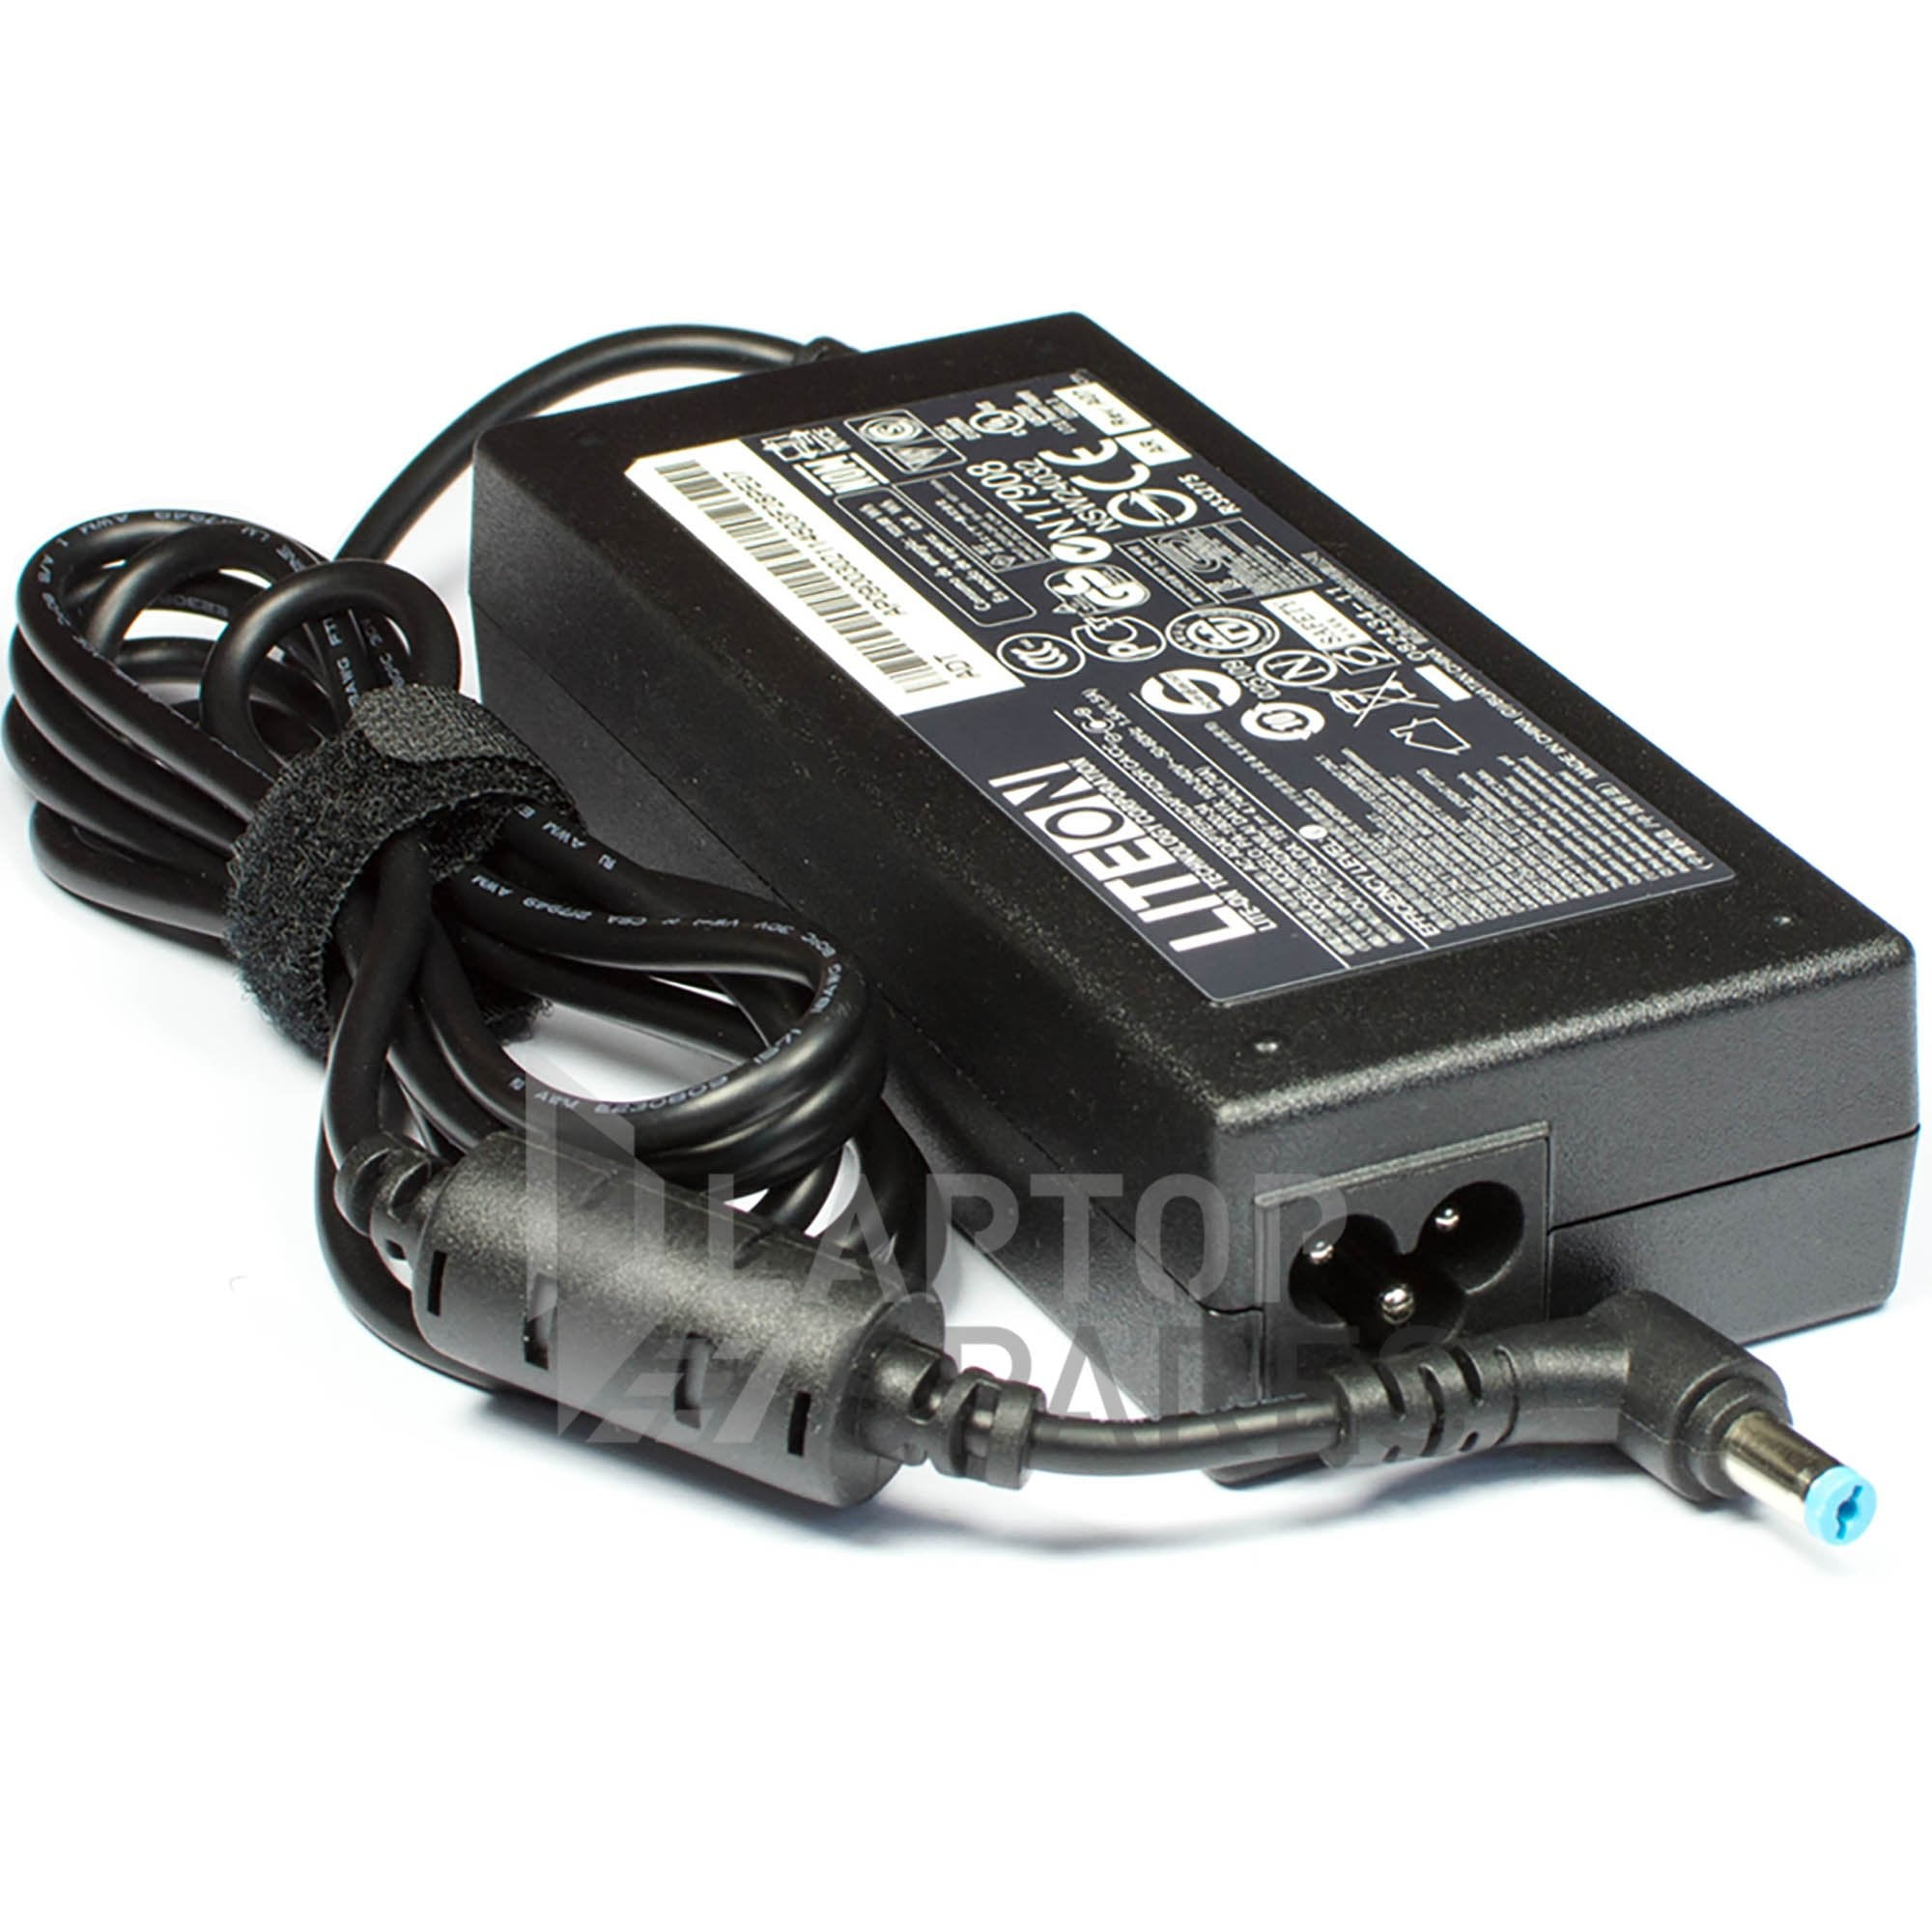 Acer Travelmate 500 510 Laptop AC Adapter Charger